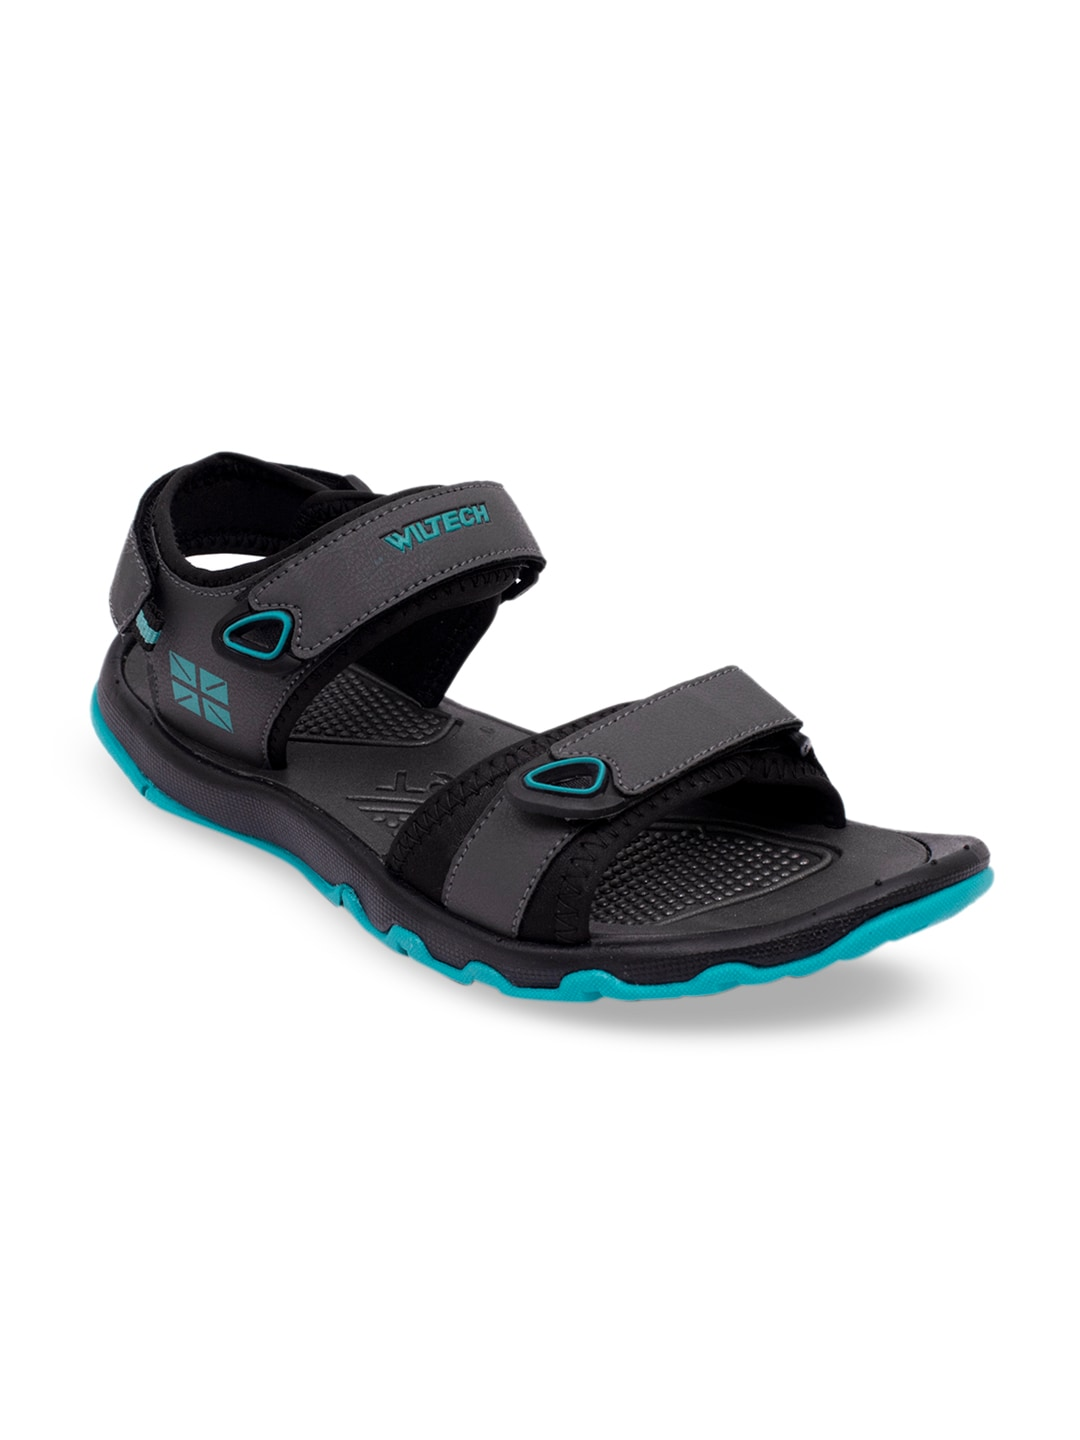 b4dae51f554c Sandals For Men - Buy Men Sandals Online in India